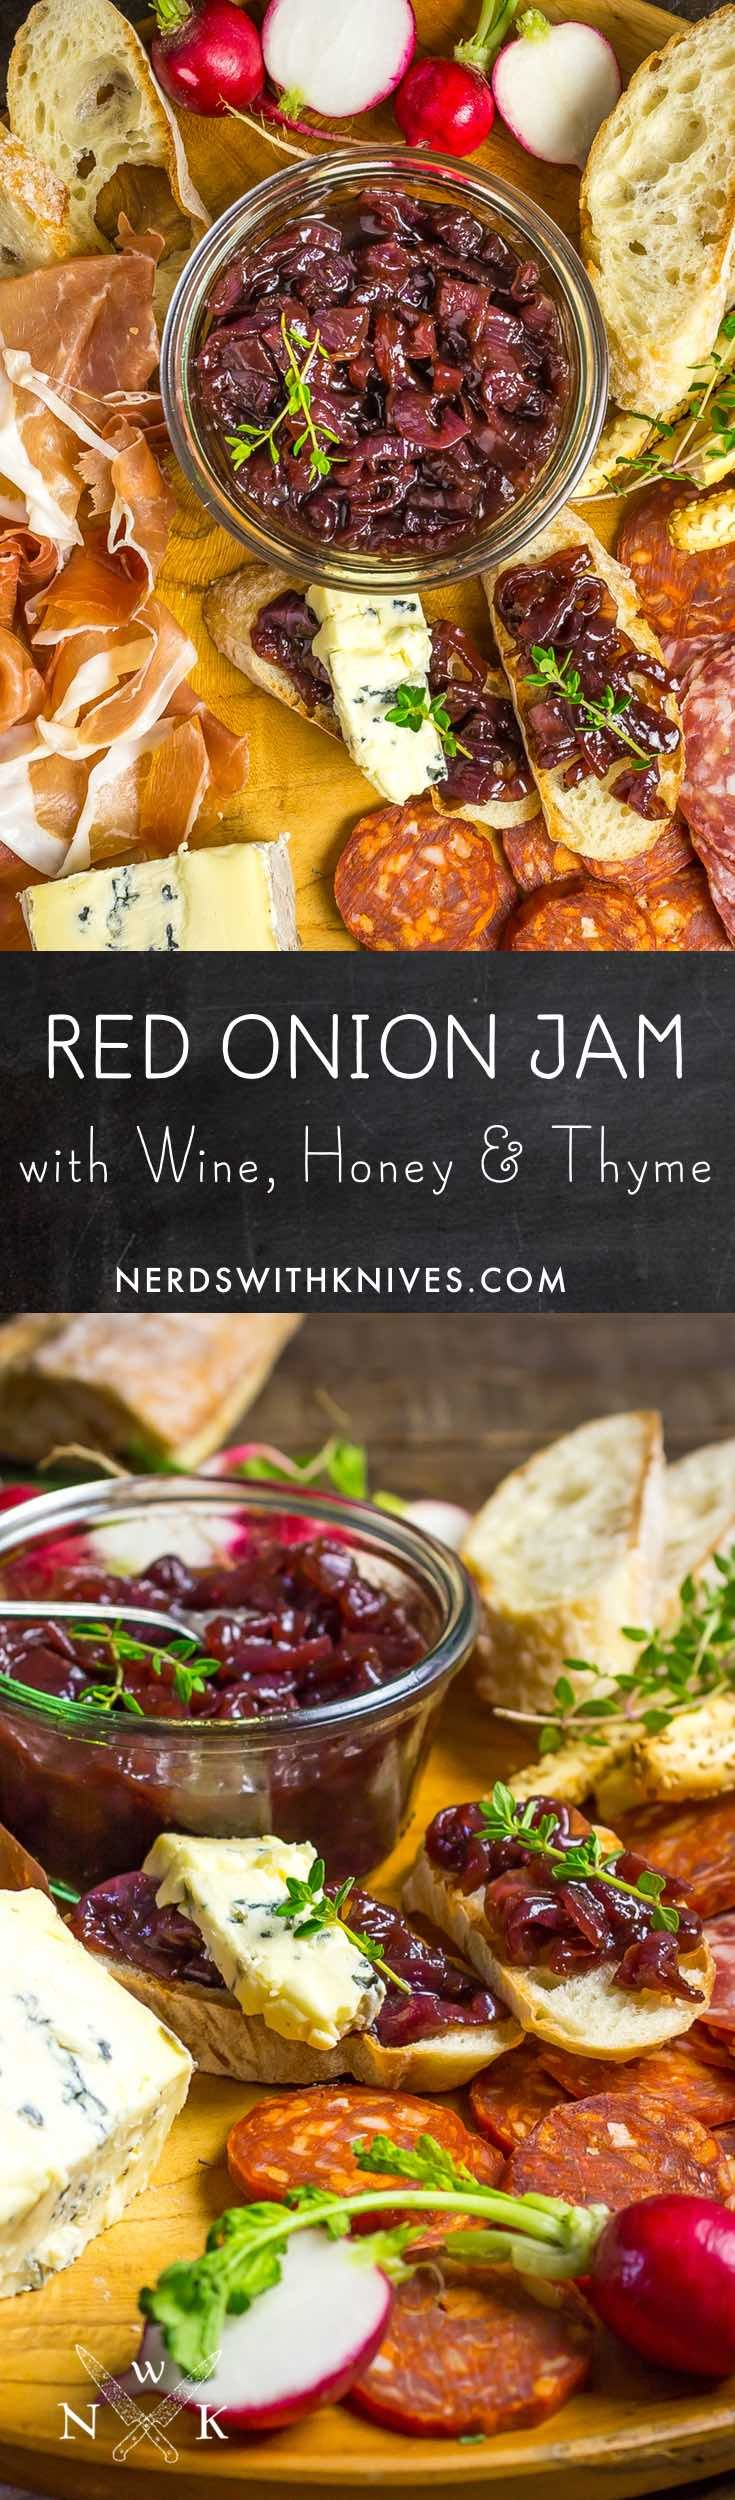 Sweet, savory and just plain delicious, Red Onion Jam with Wine, Honey and Thyme is a perfect addition to any cheese or charcuterie board.